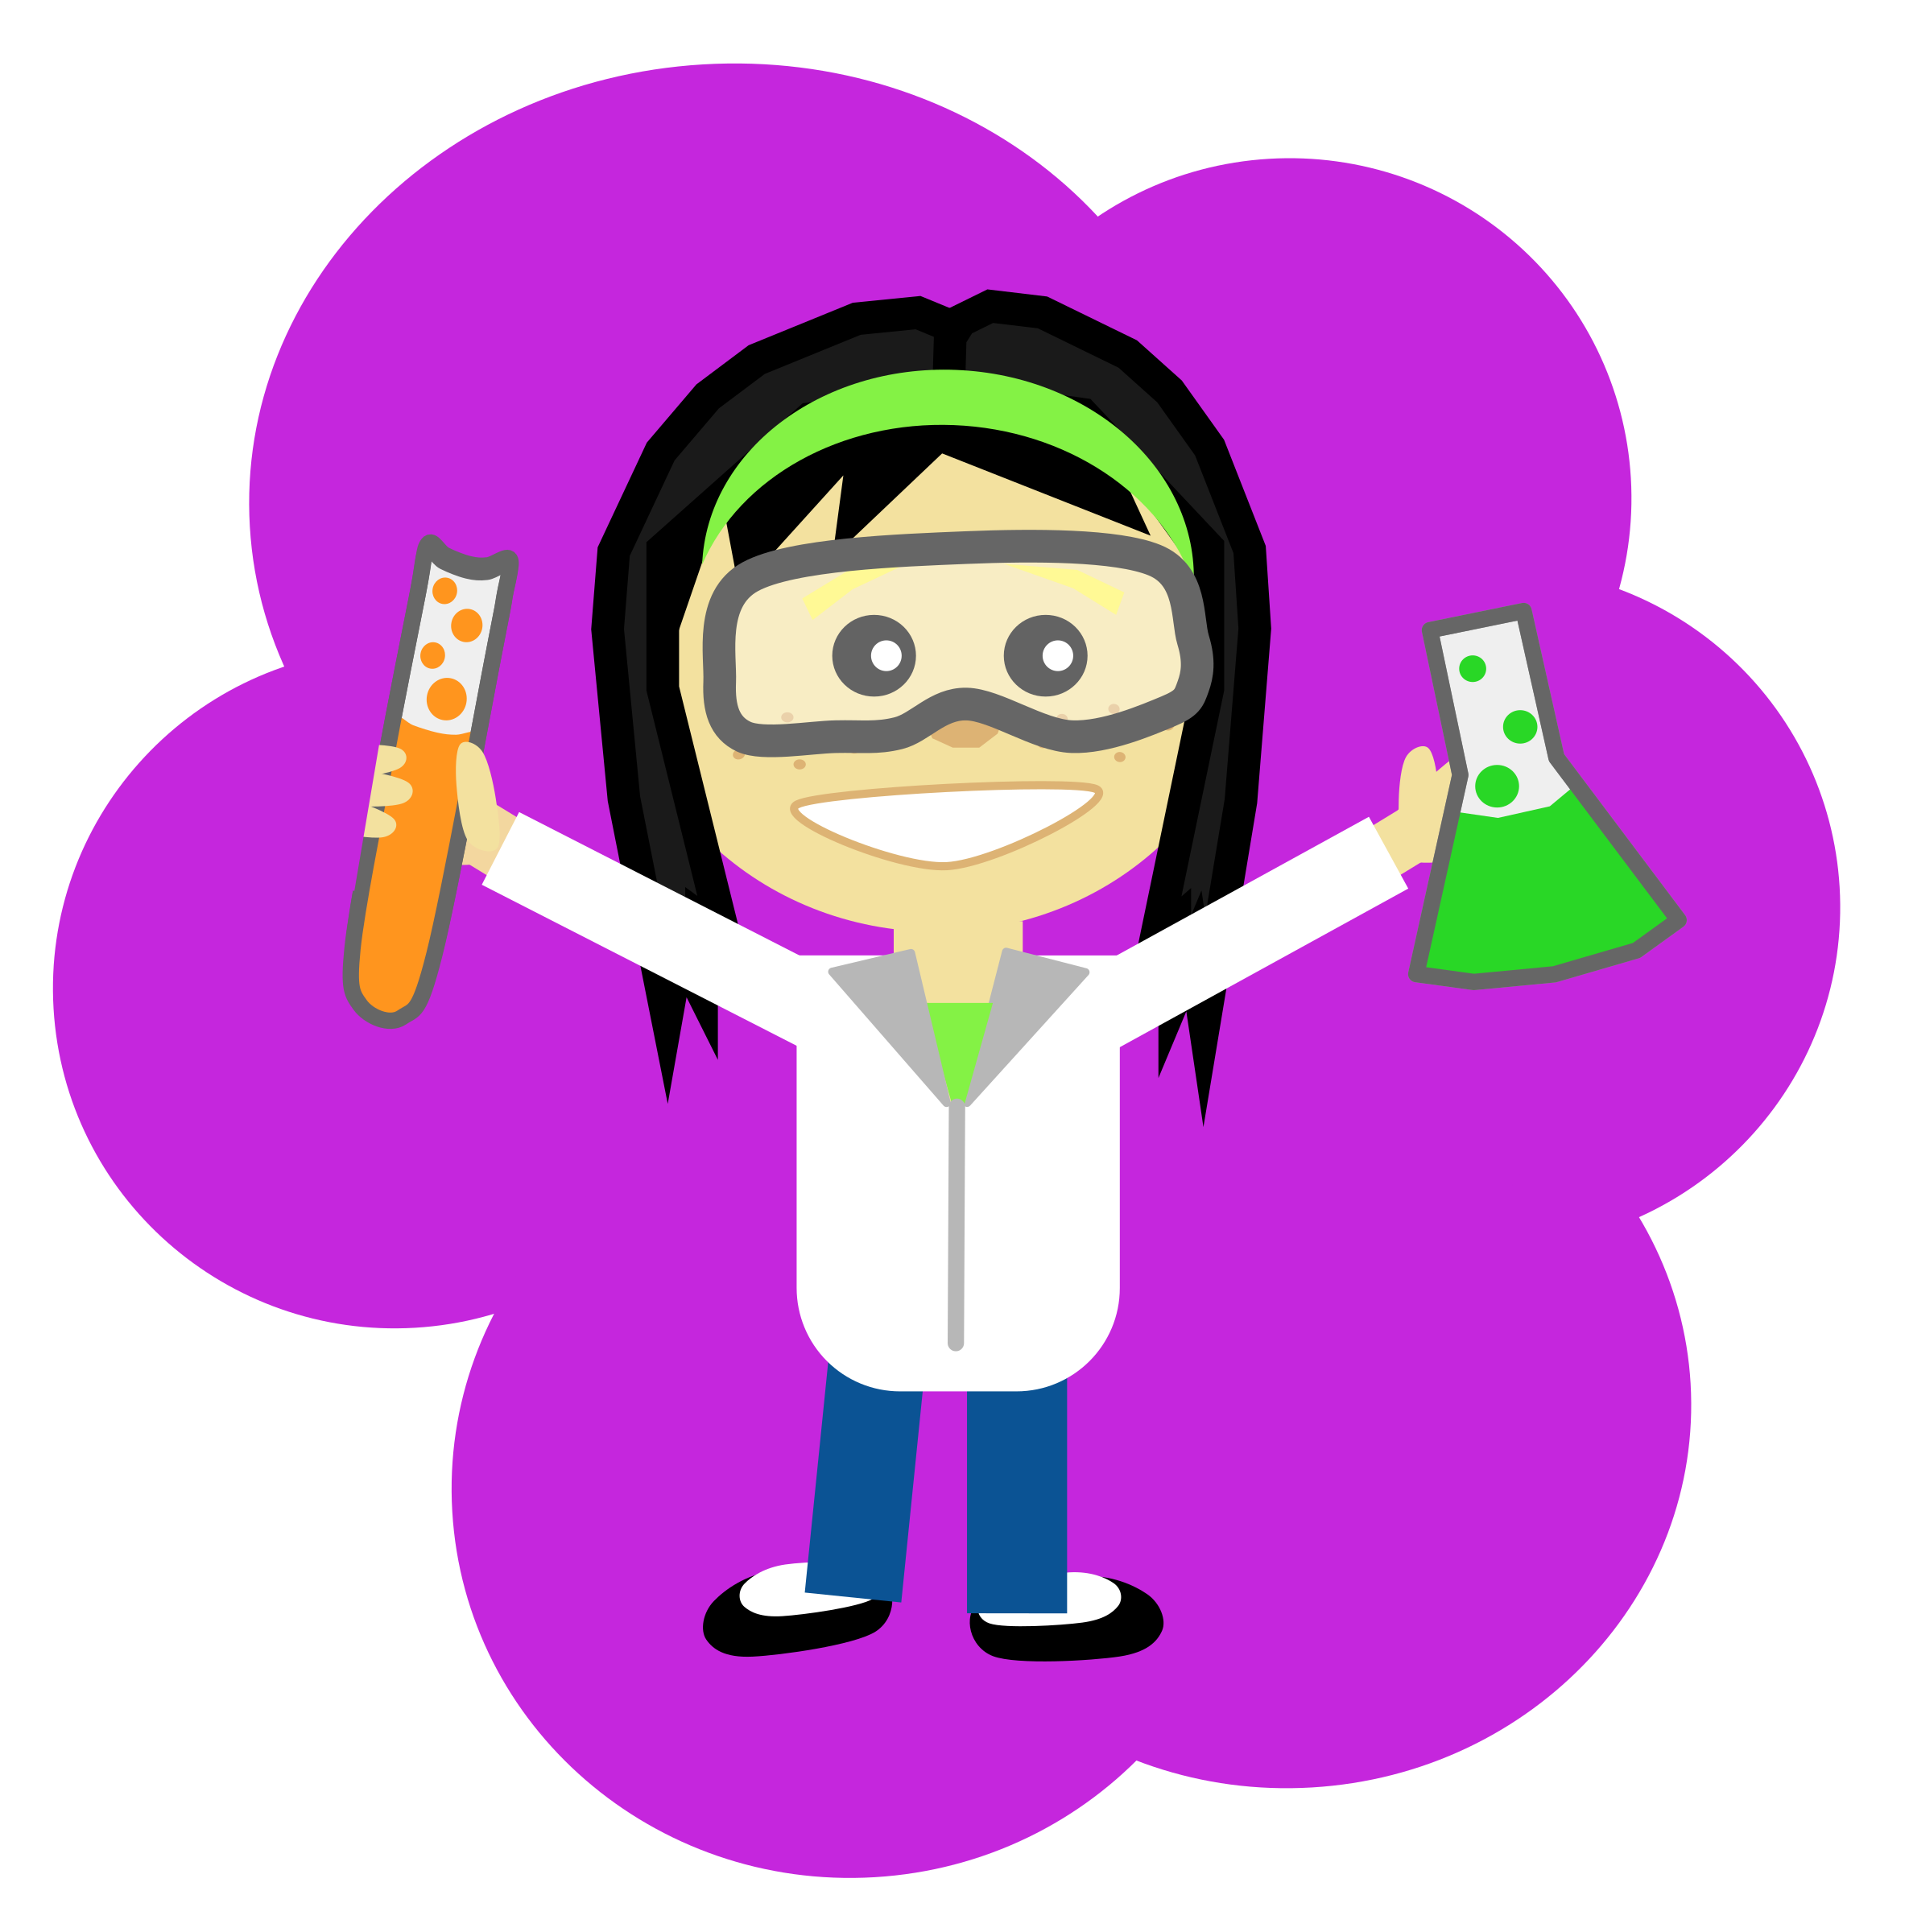 Science girl with black. Politics clipart political issue